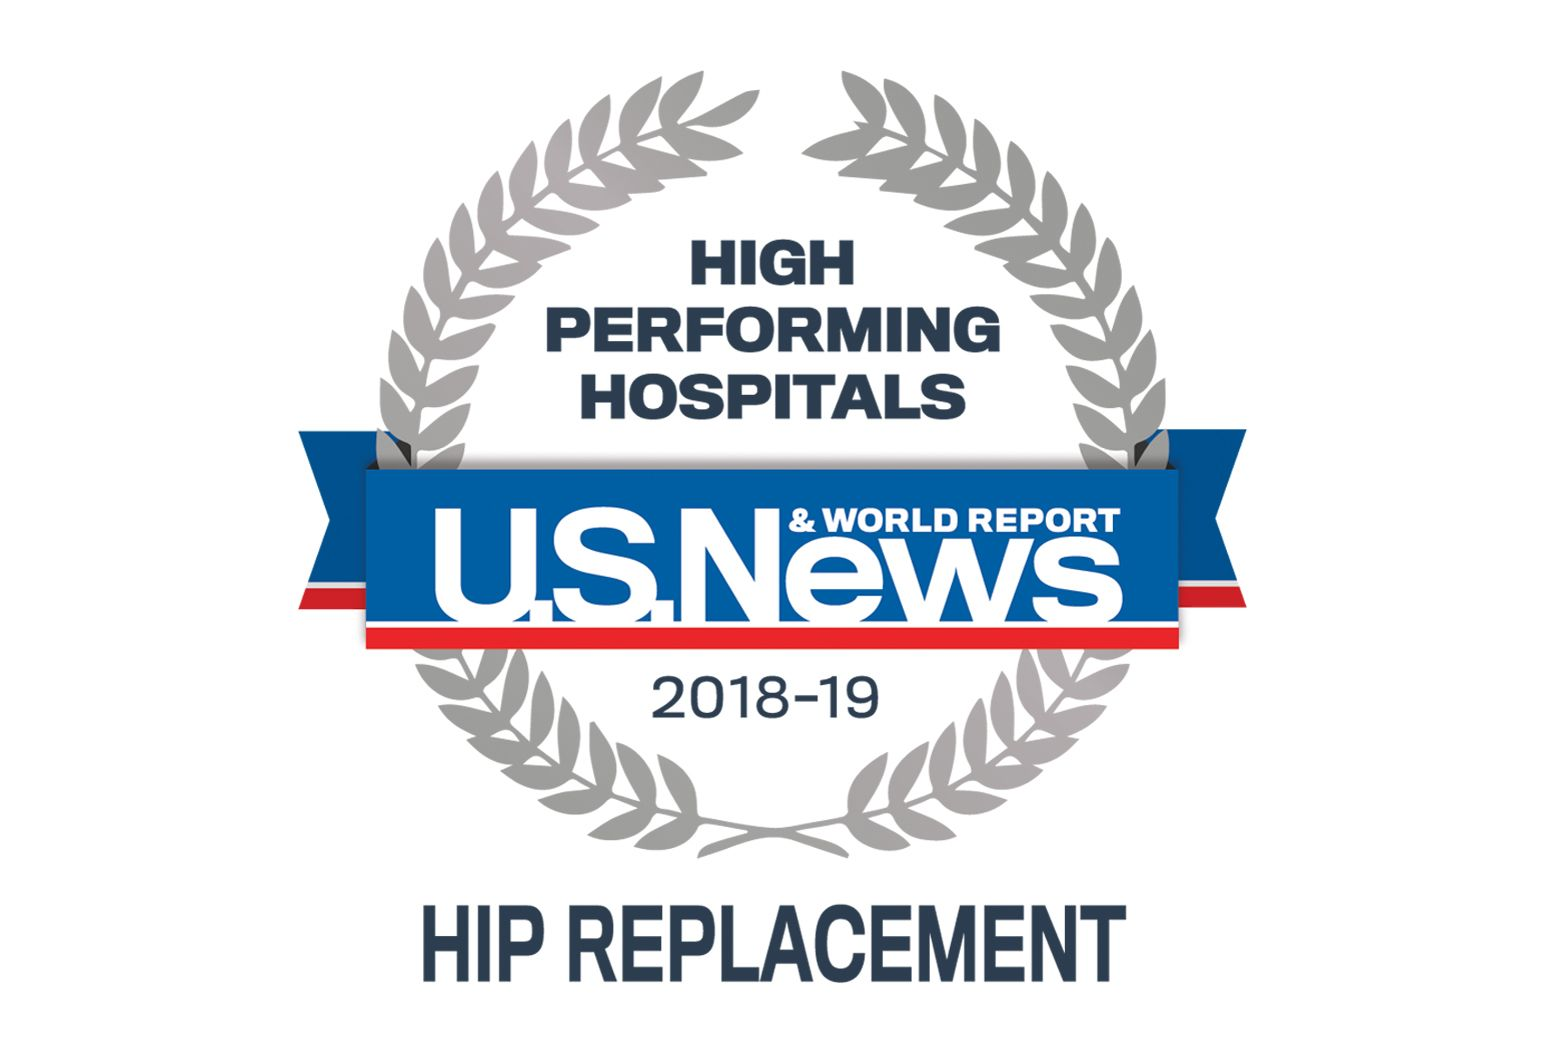 US News badge showing high performance in hip replacement